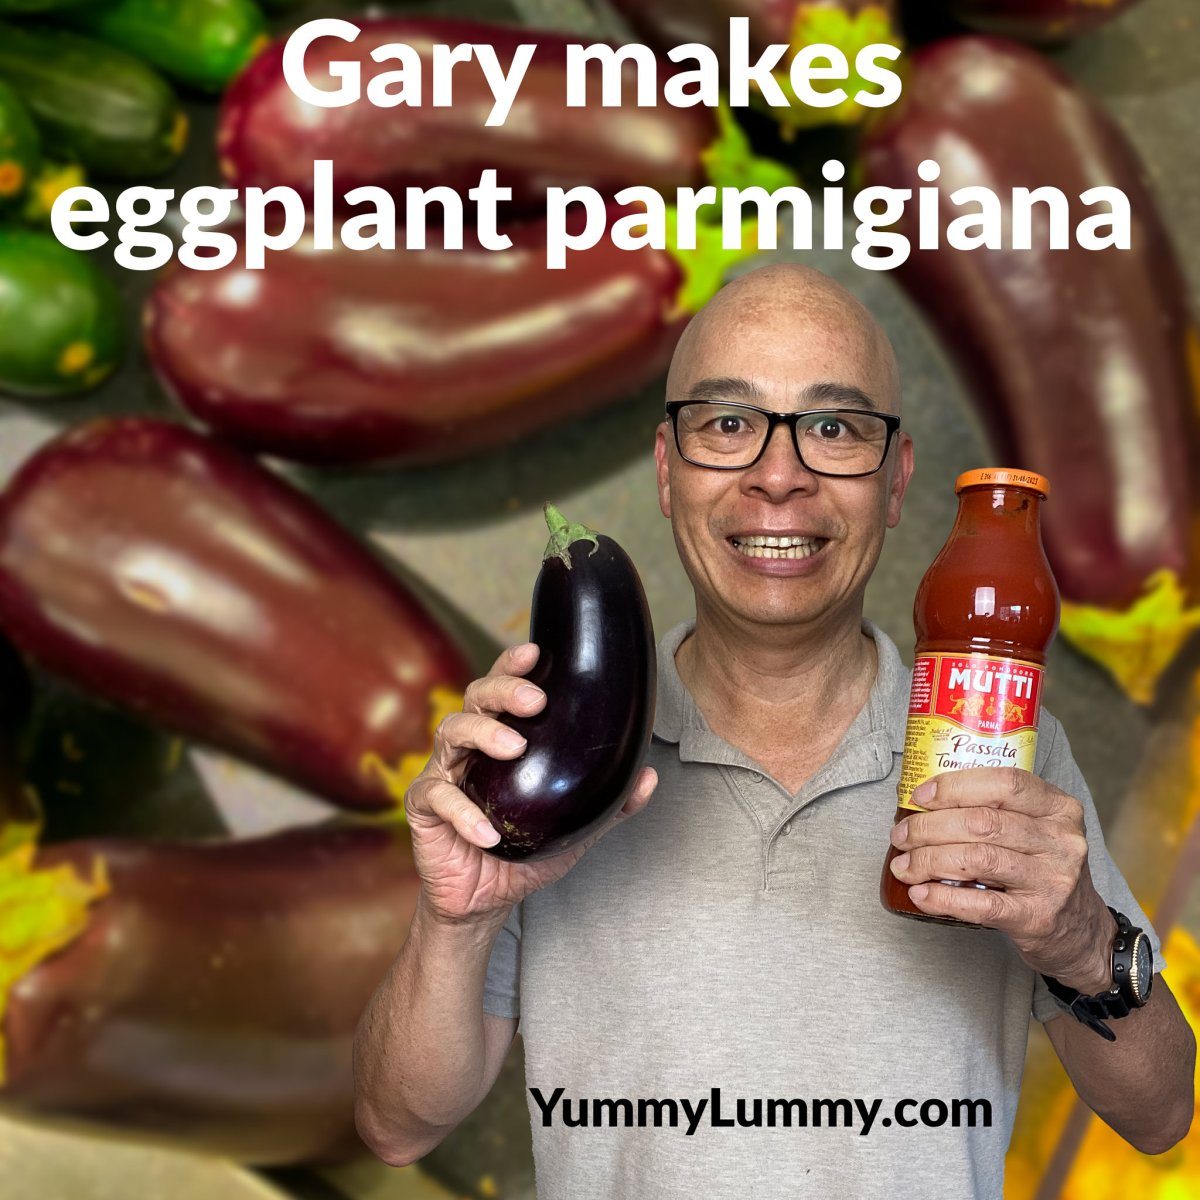 My first eggplant parmigiana experience